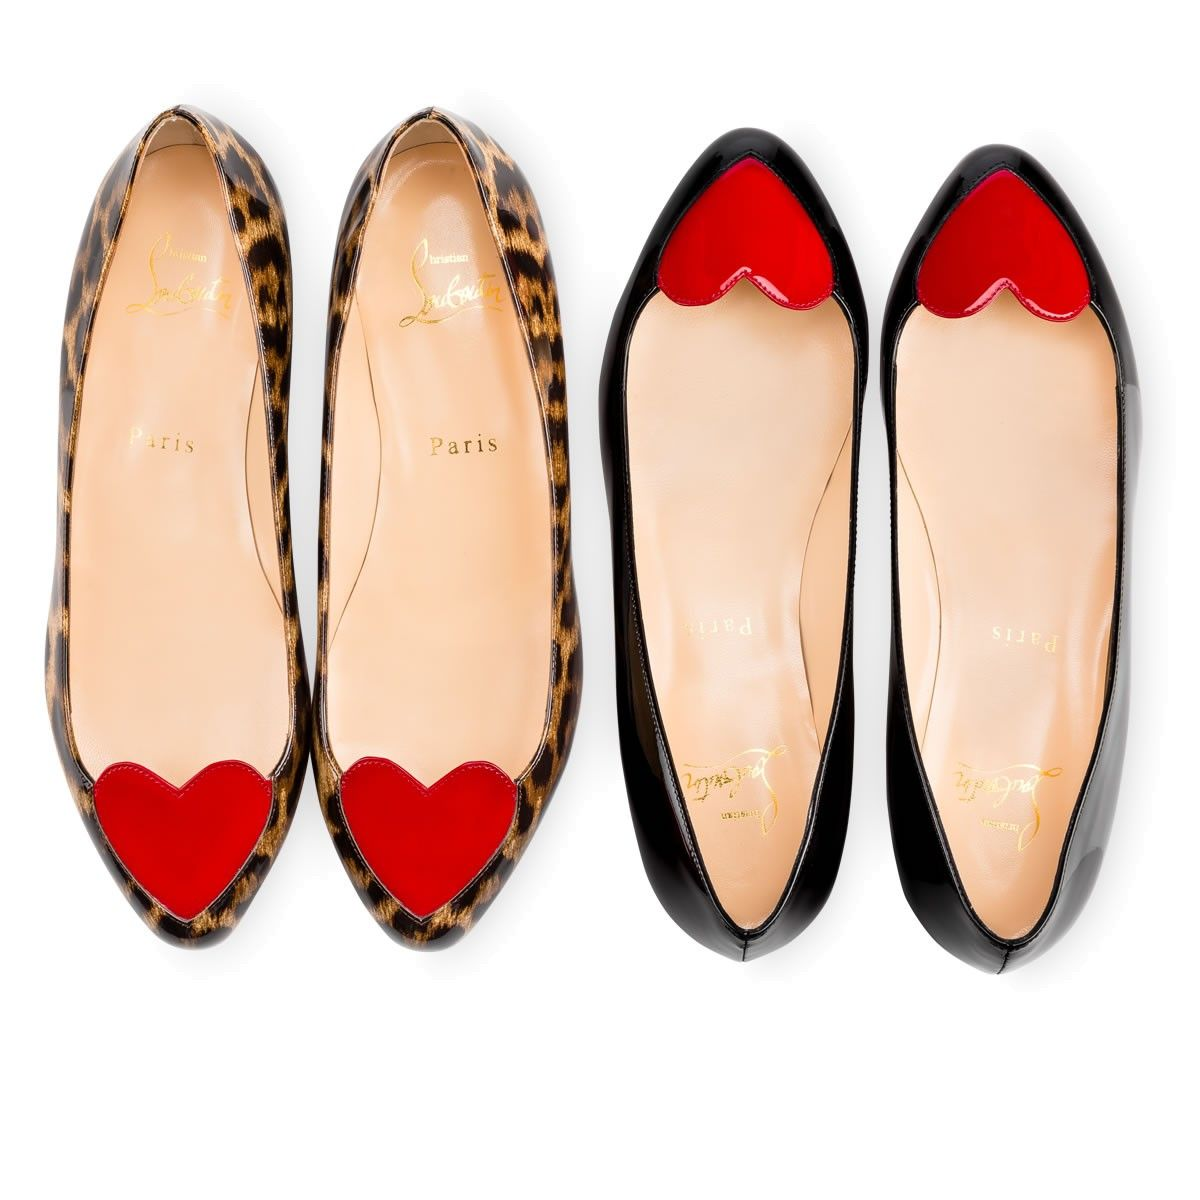 Chaussures femme Doracora Vernis Christian Louboutin